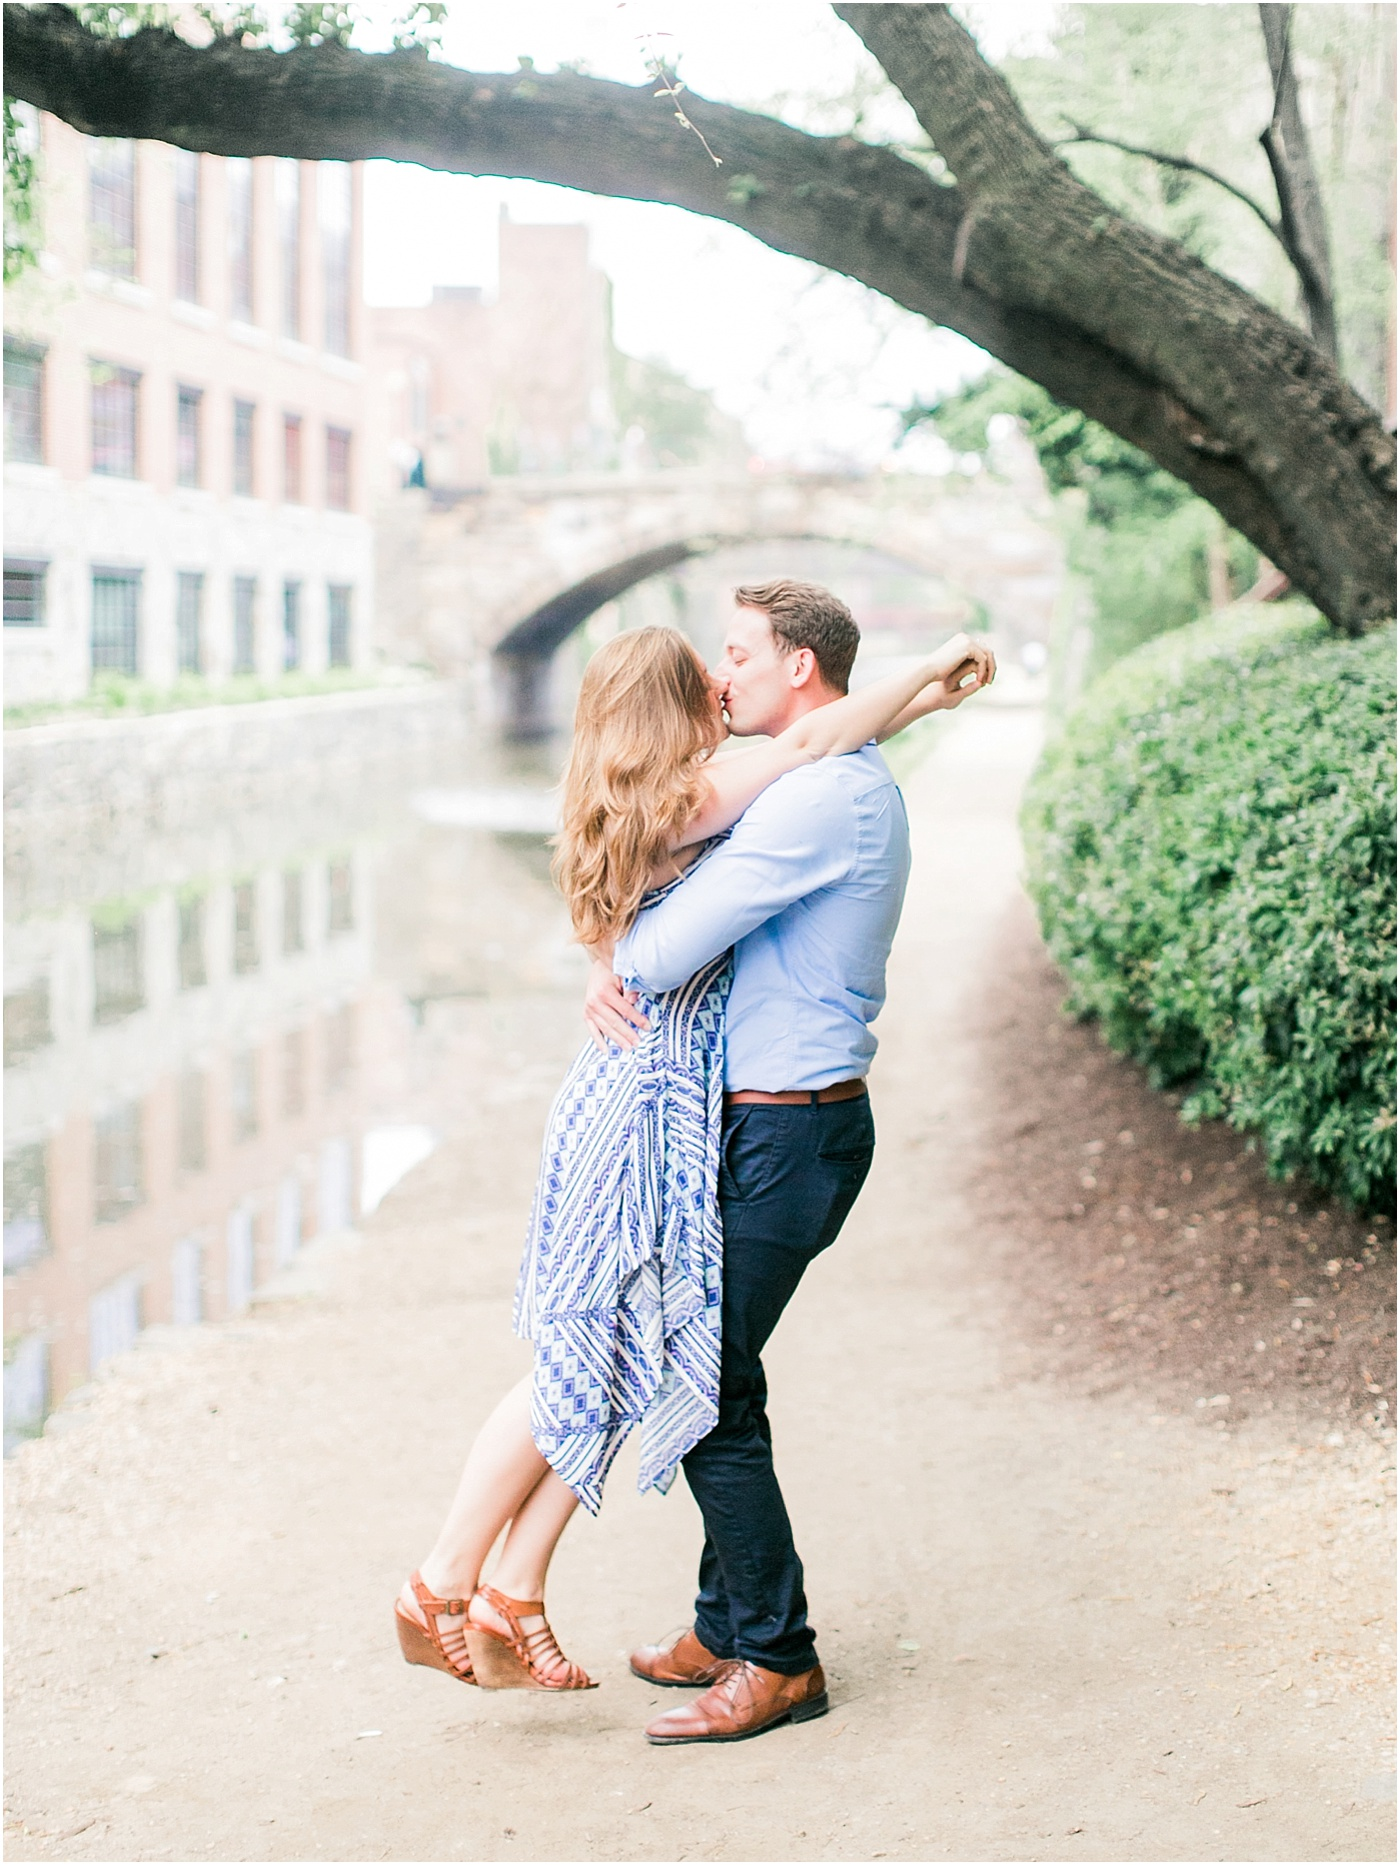 Georgetown DC Engagement Session by Jordan Brittley (www.jordanbrittley.com)